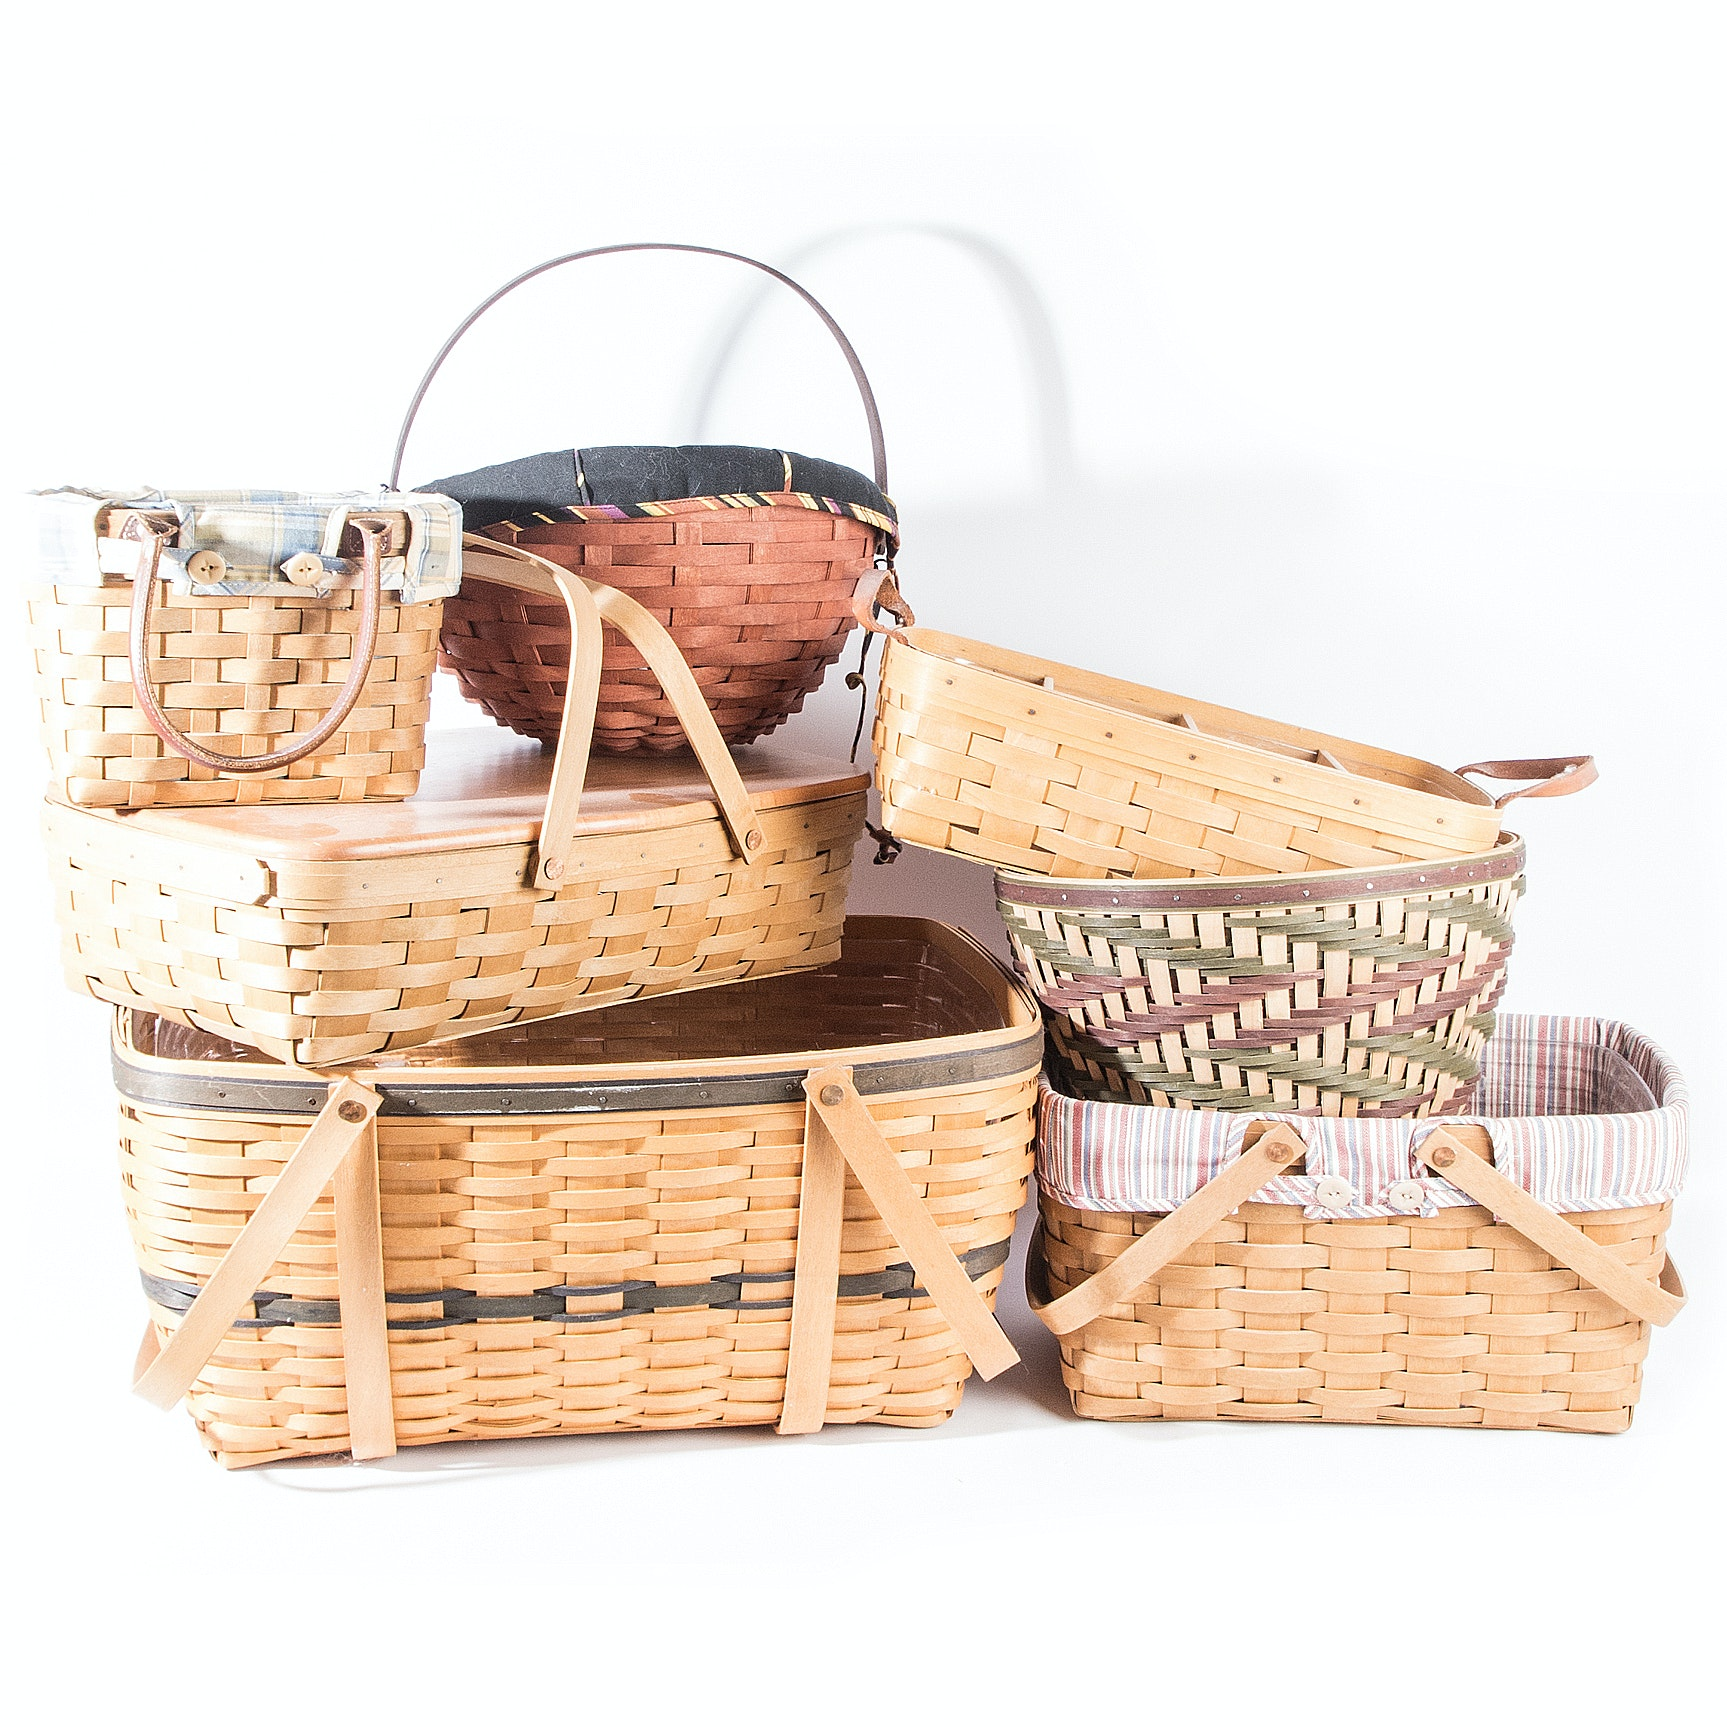 longaberger baskets for sale longaberger baskets